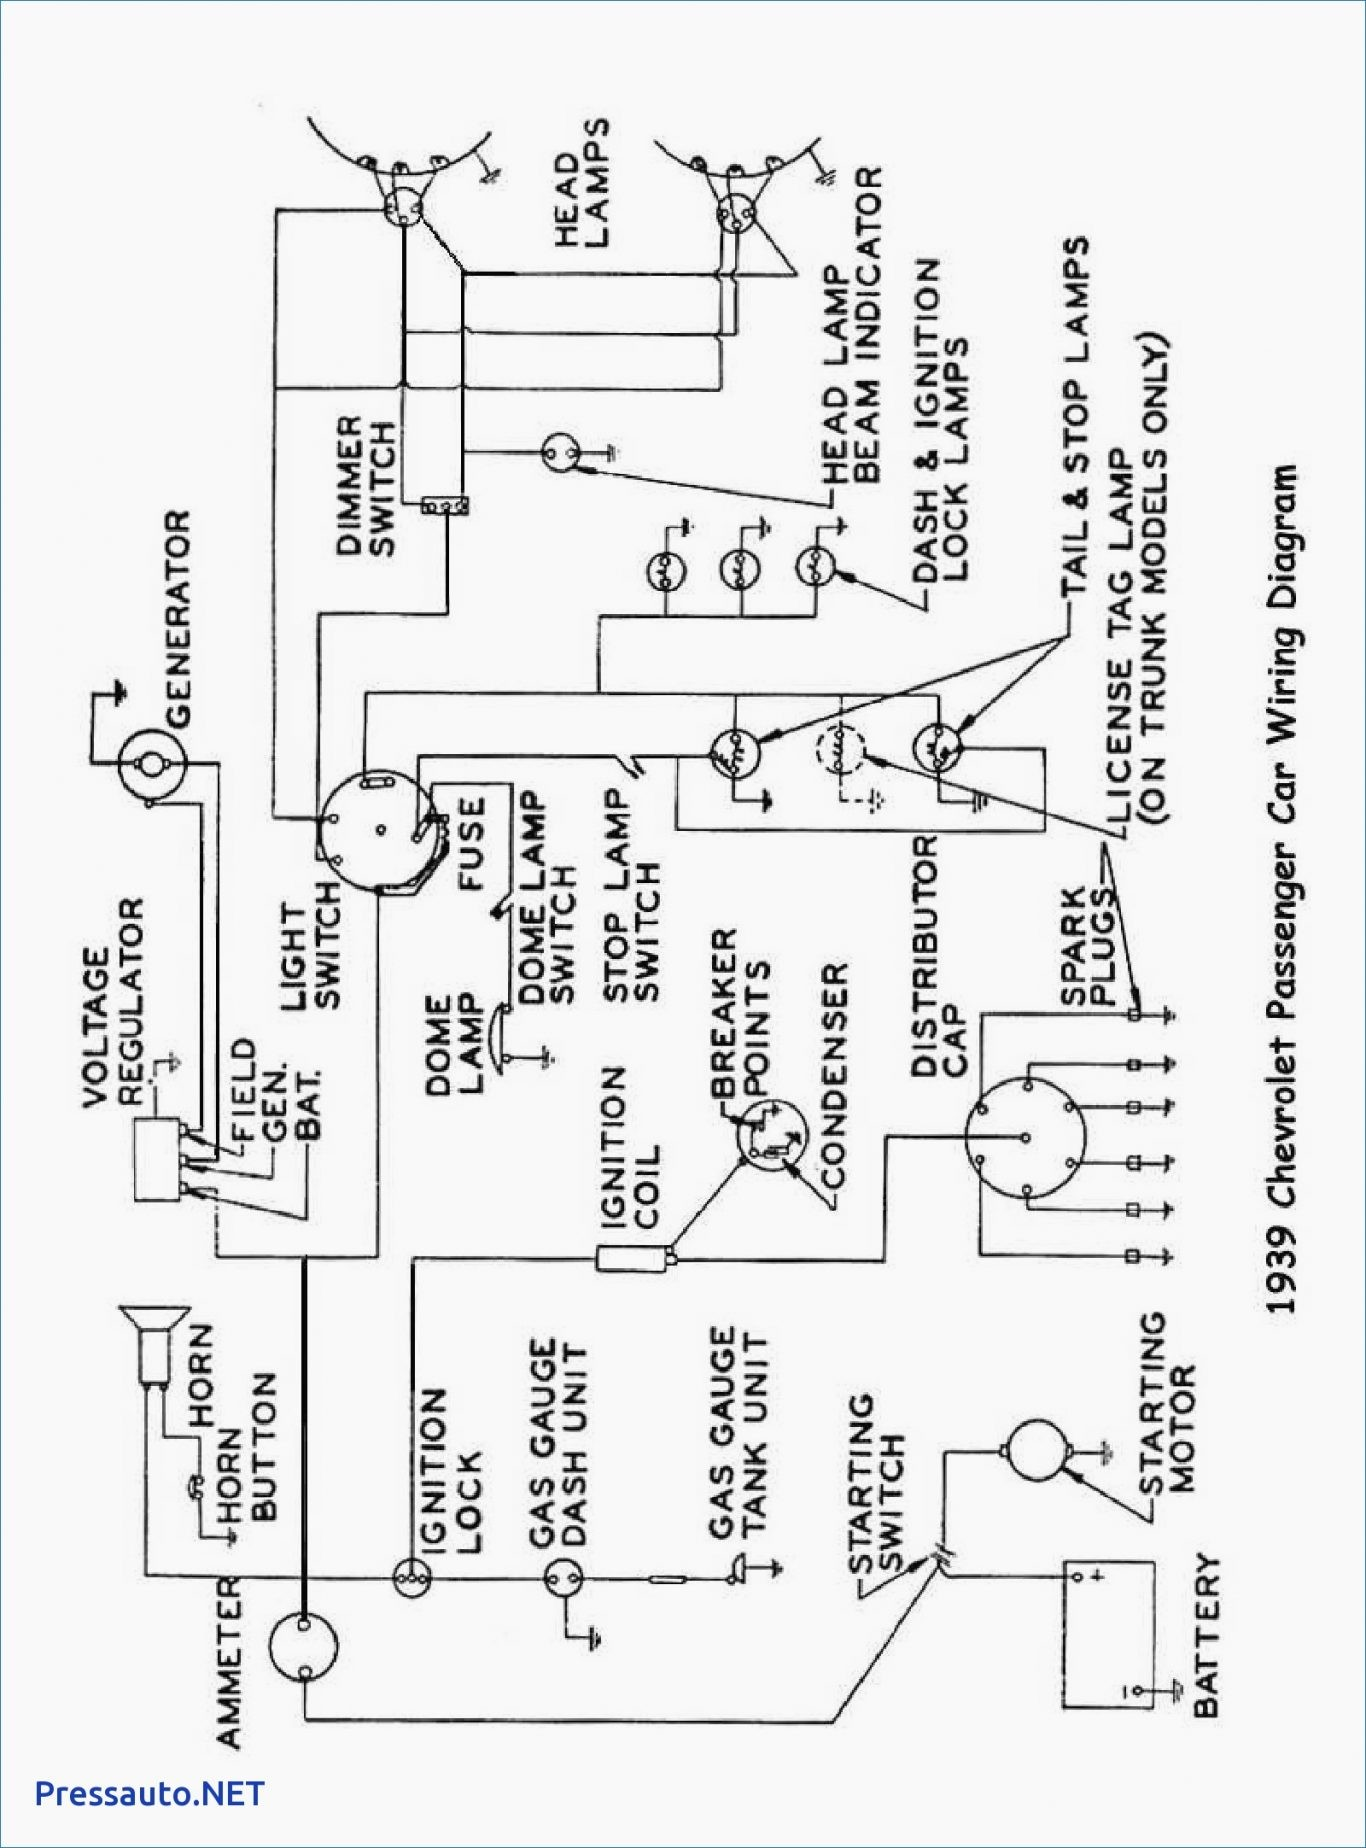 light switch drawing at getdrawings free for personal use Guitar Wiring Diagram Two Humbuckers 1366x1848 wiring diagram 1 gang switch best of way dimmer wiring diagram